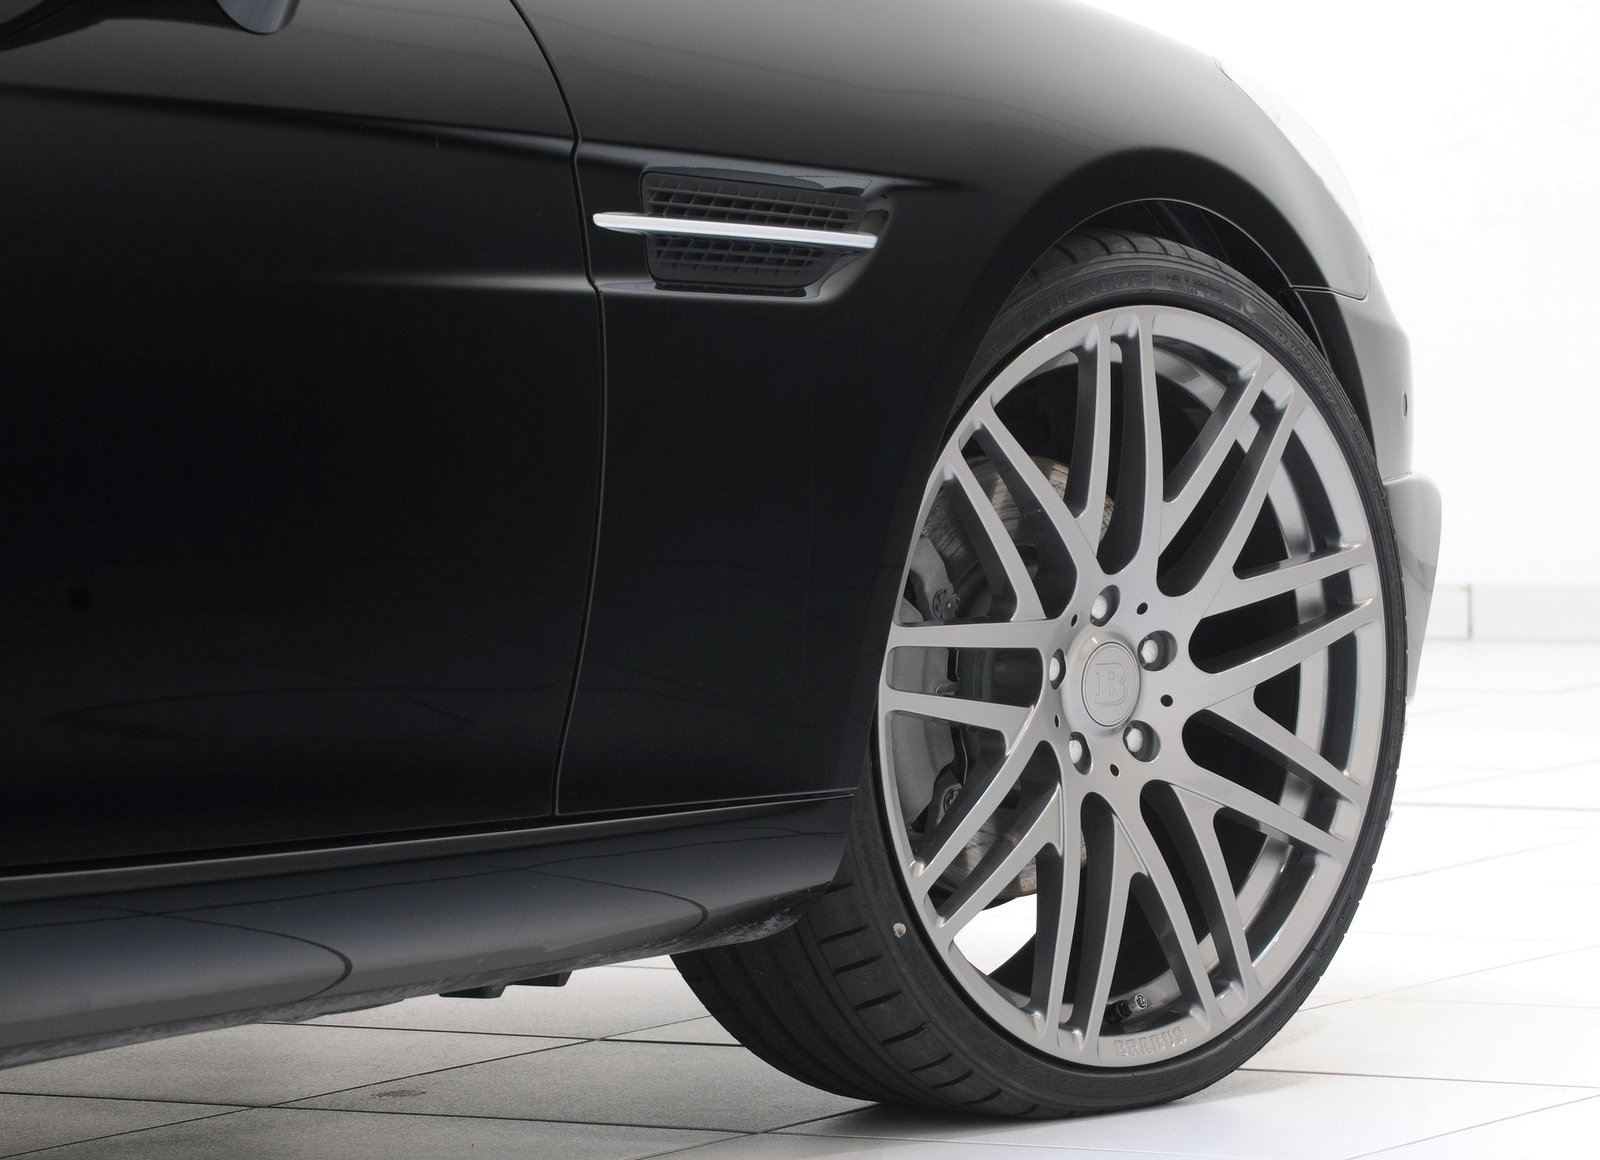 Mercedes-Benz SLK-Class wheels #2